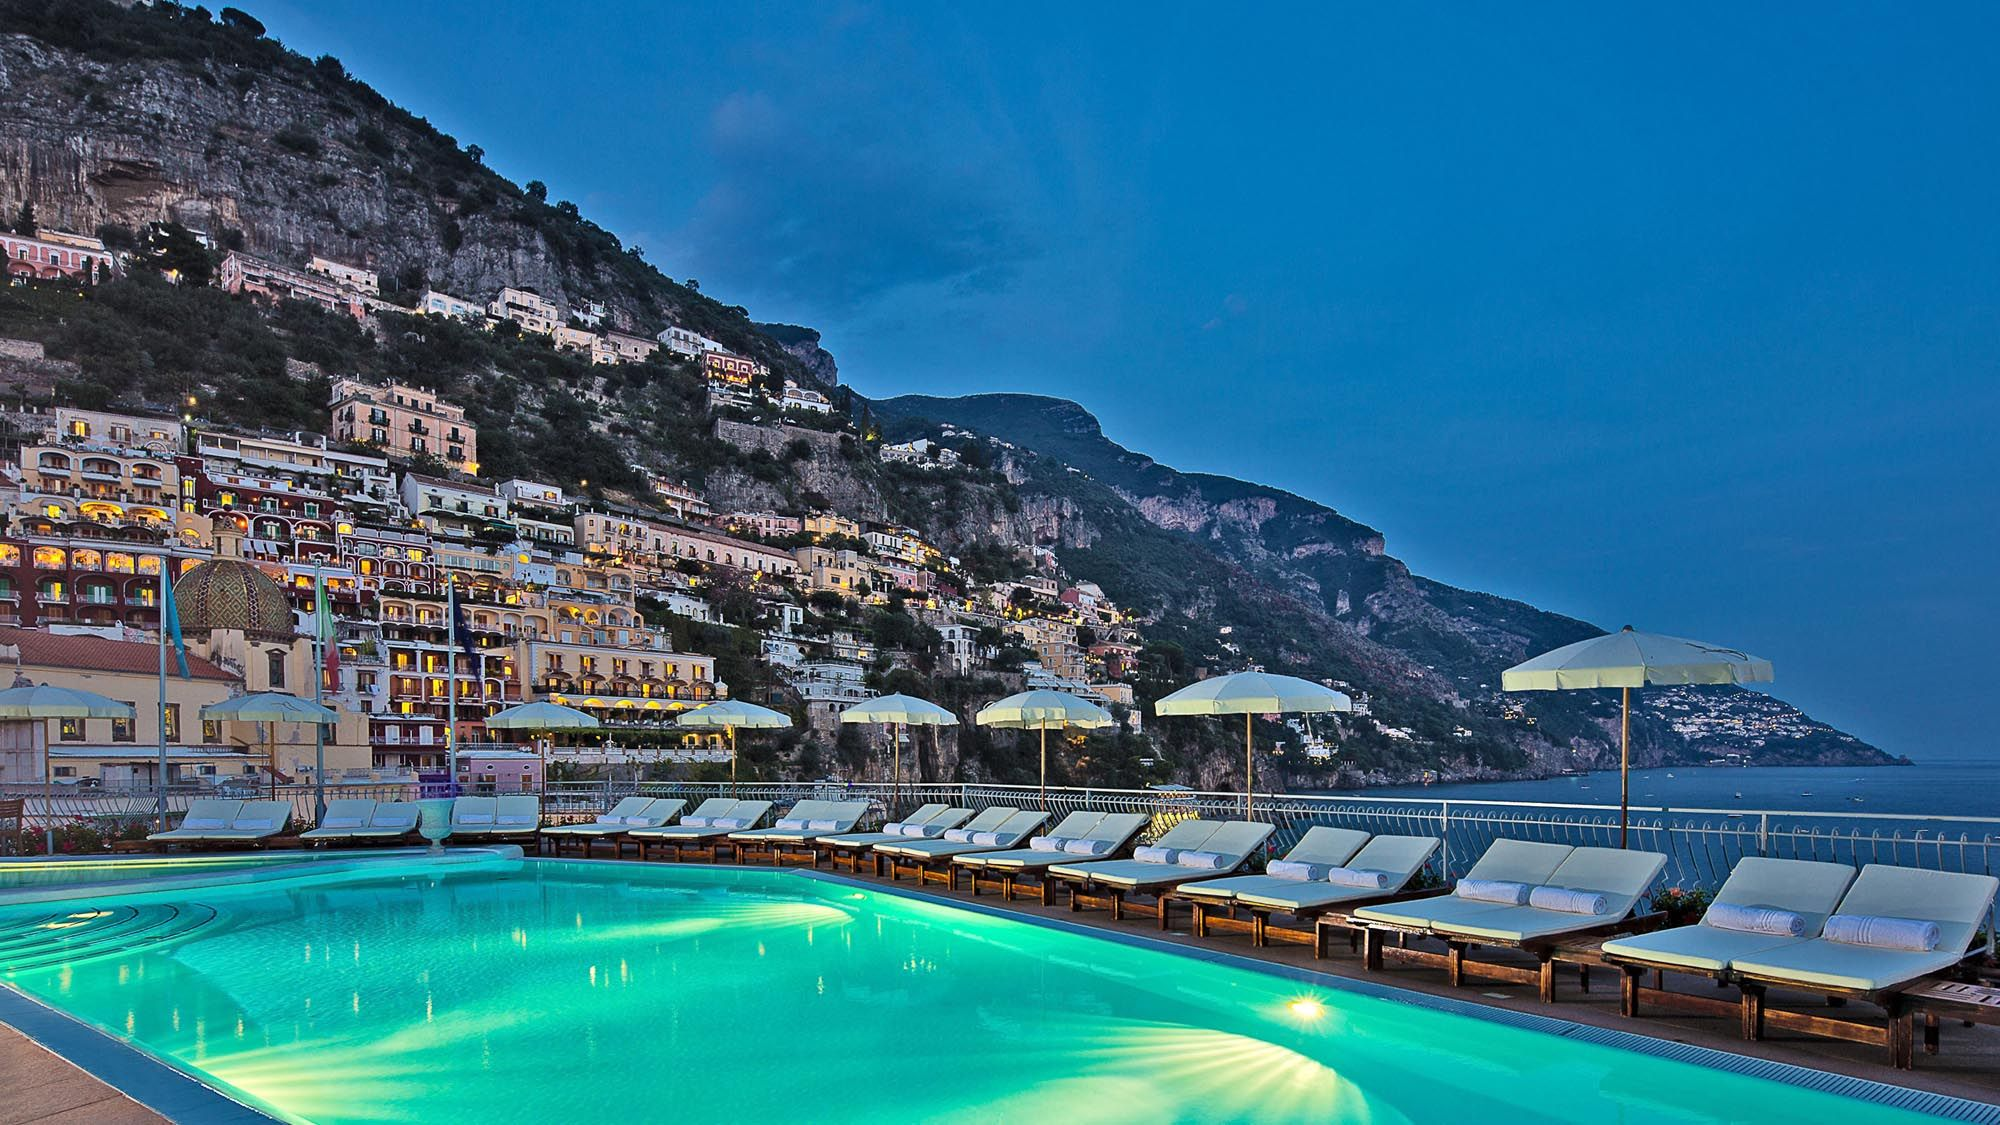 Hotels In Positano With Pool Hotels In Amalfi Coast With Swimming